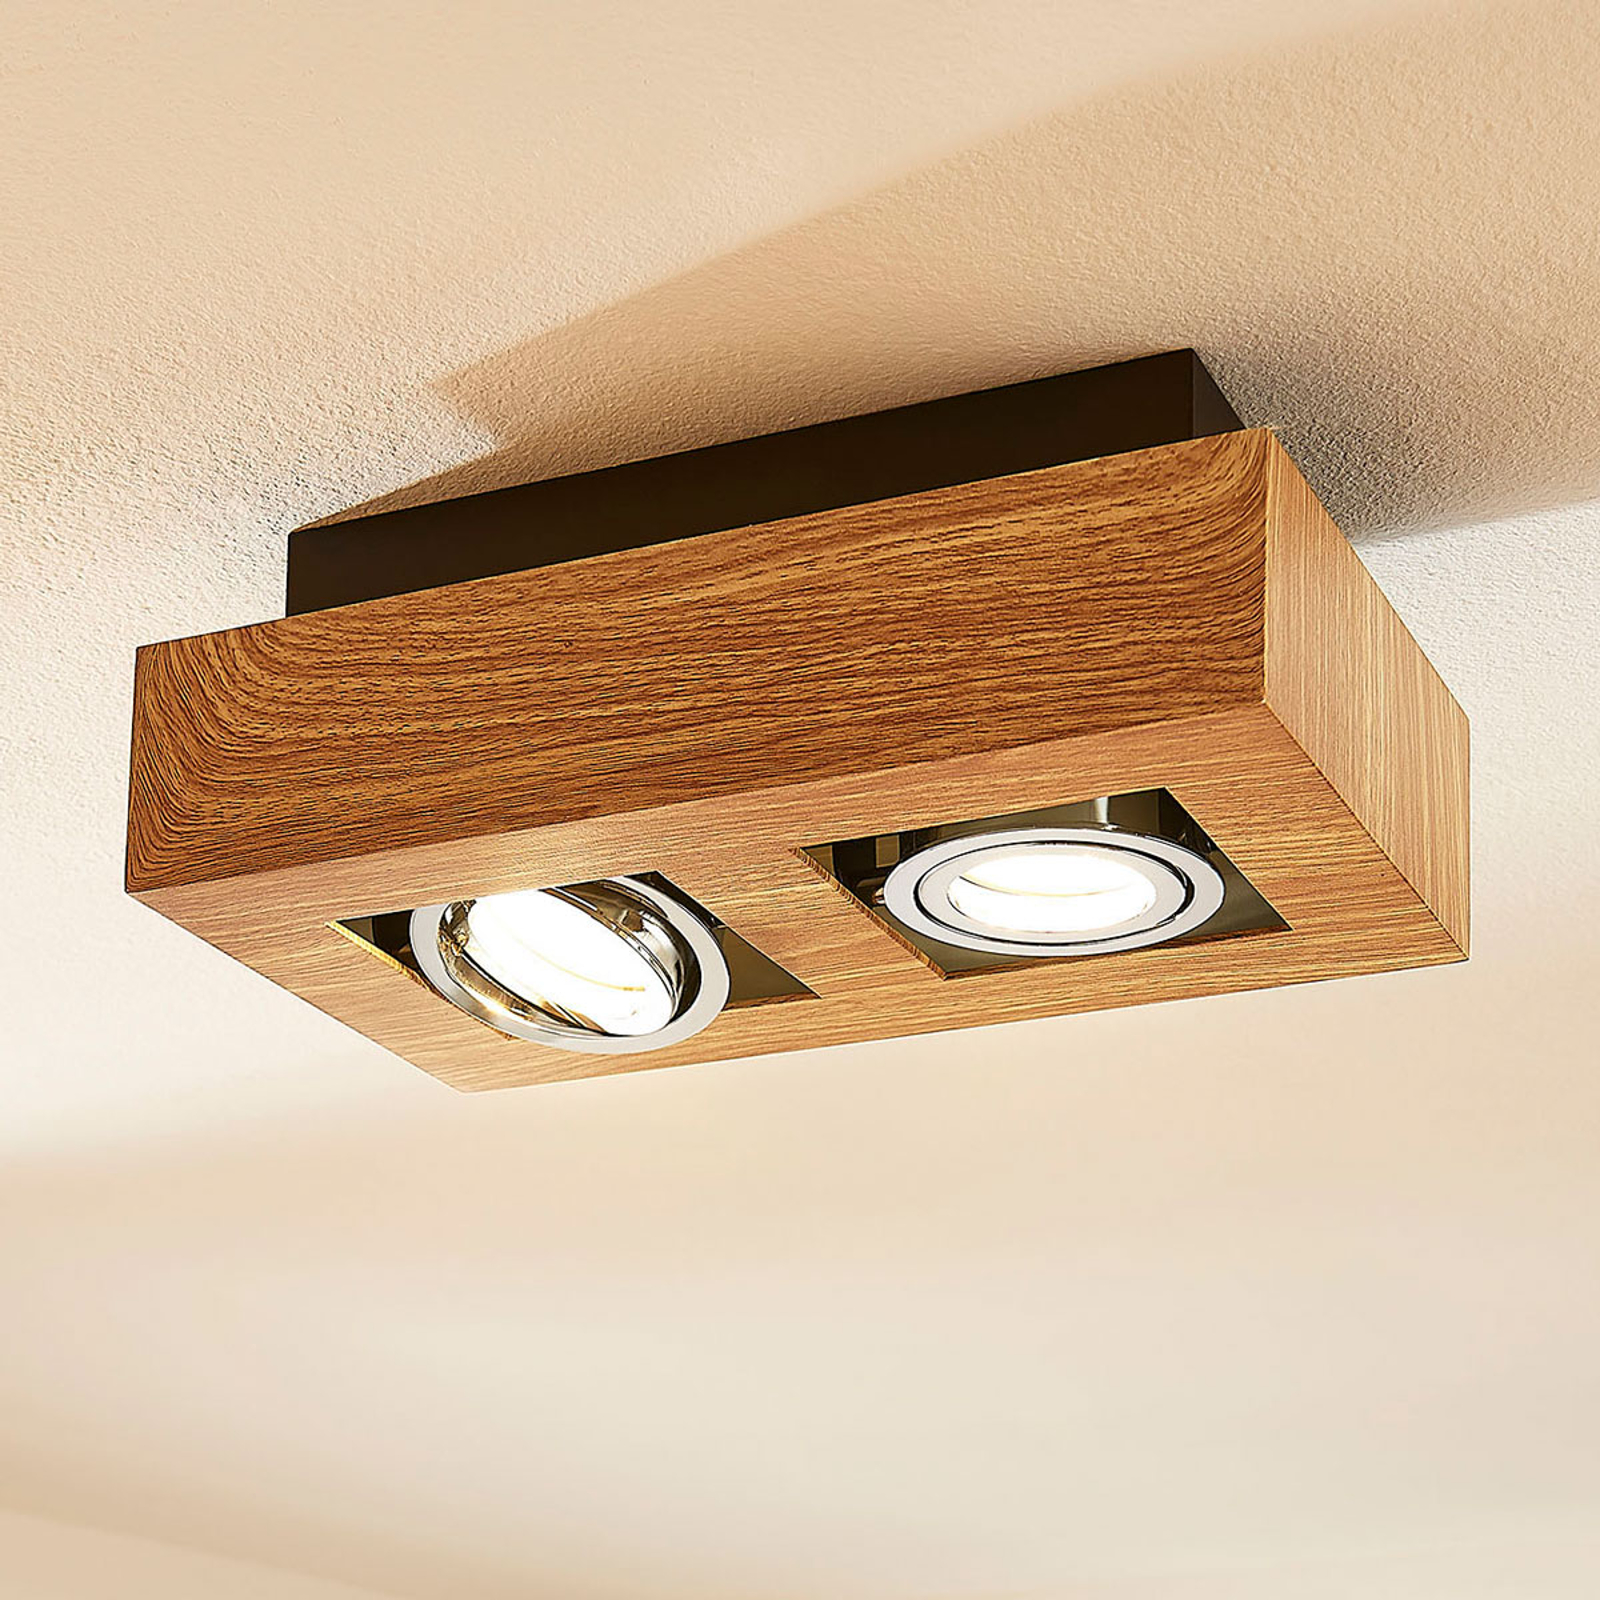 Vince LED-taklampe, 25x14 cm i tre-optikk